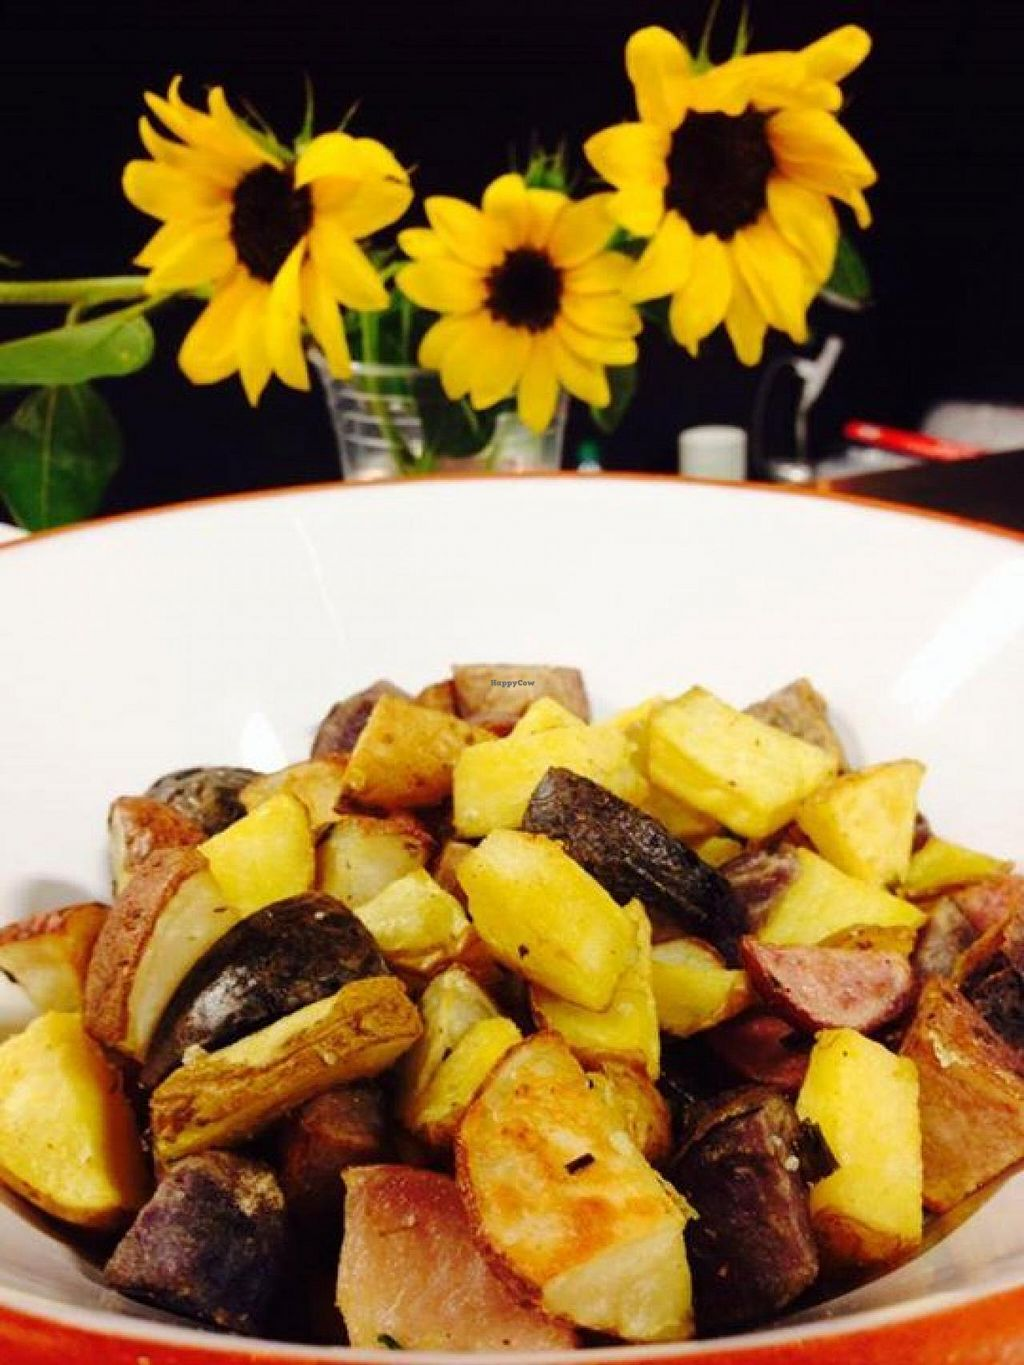 """Photo of Good People Kitchen  by <a href=""""/members/profile/community"""">community</a> <br/>baked potatoes  <br/> September 18, 2014  - <a href='/contact/abuse/image/51135/80317'>Report</a>"""